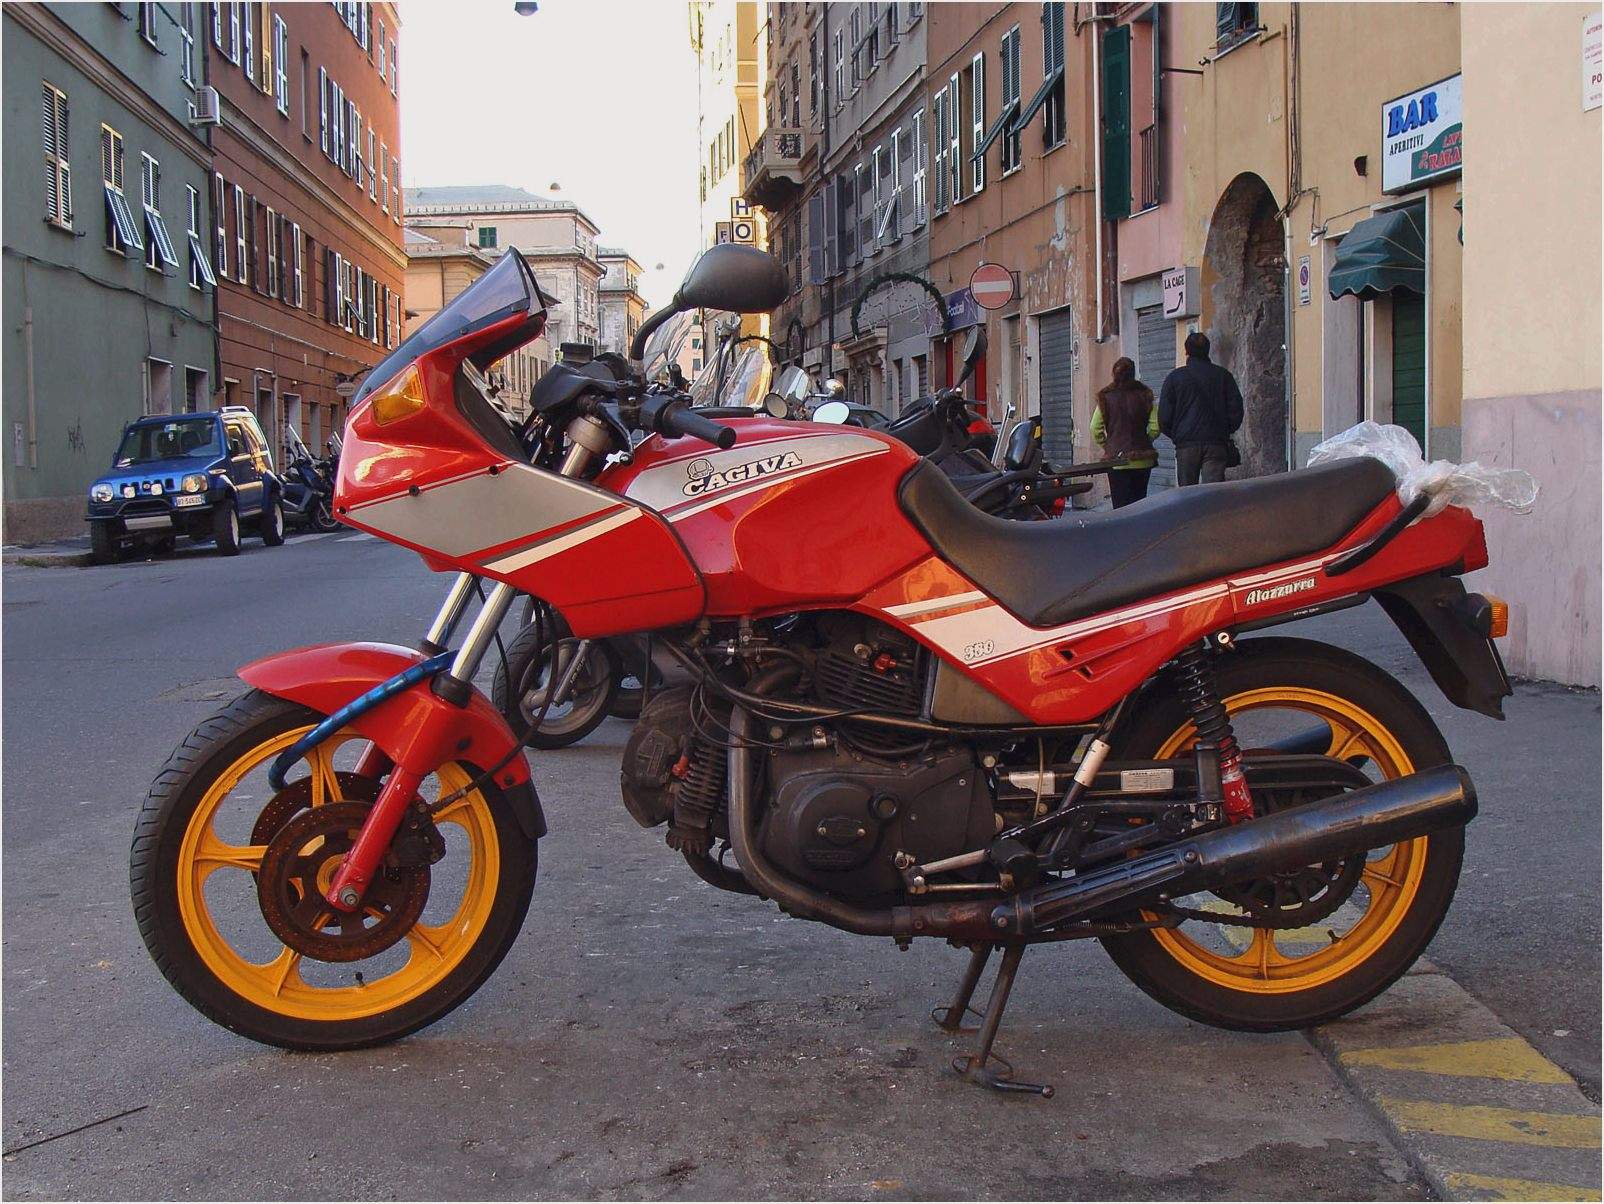 Cagiva 650 Alazzurra pics specs and list of seriess by year